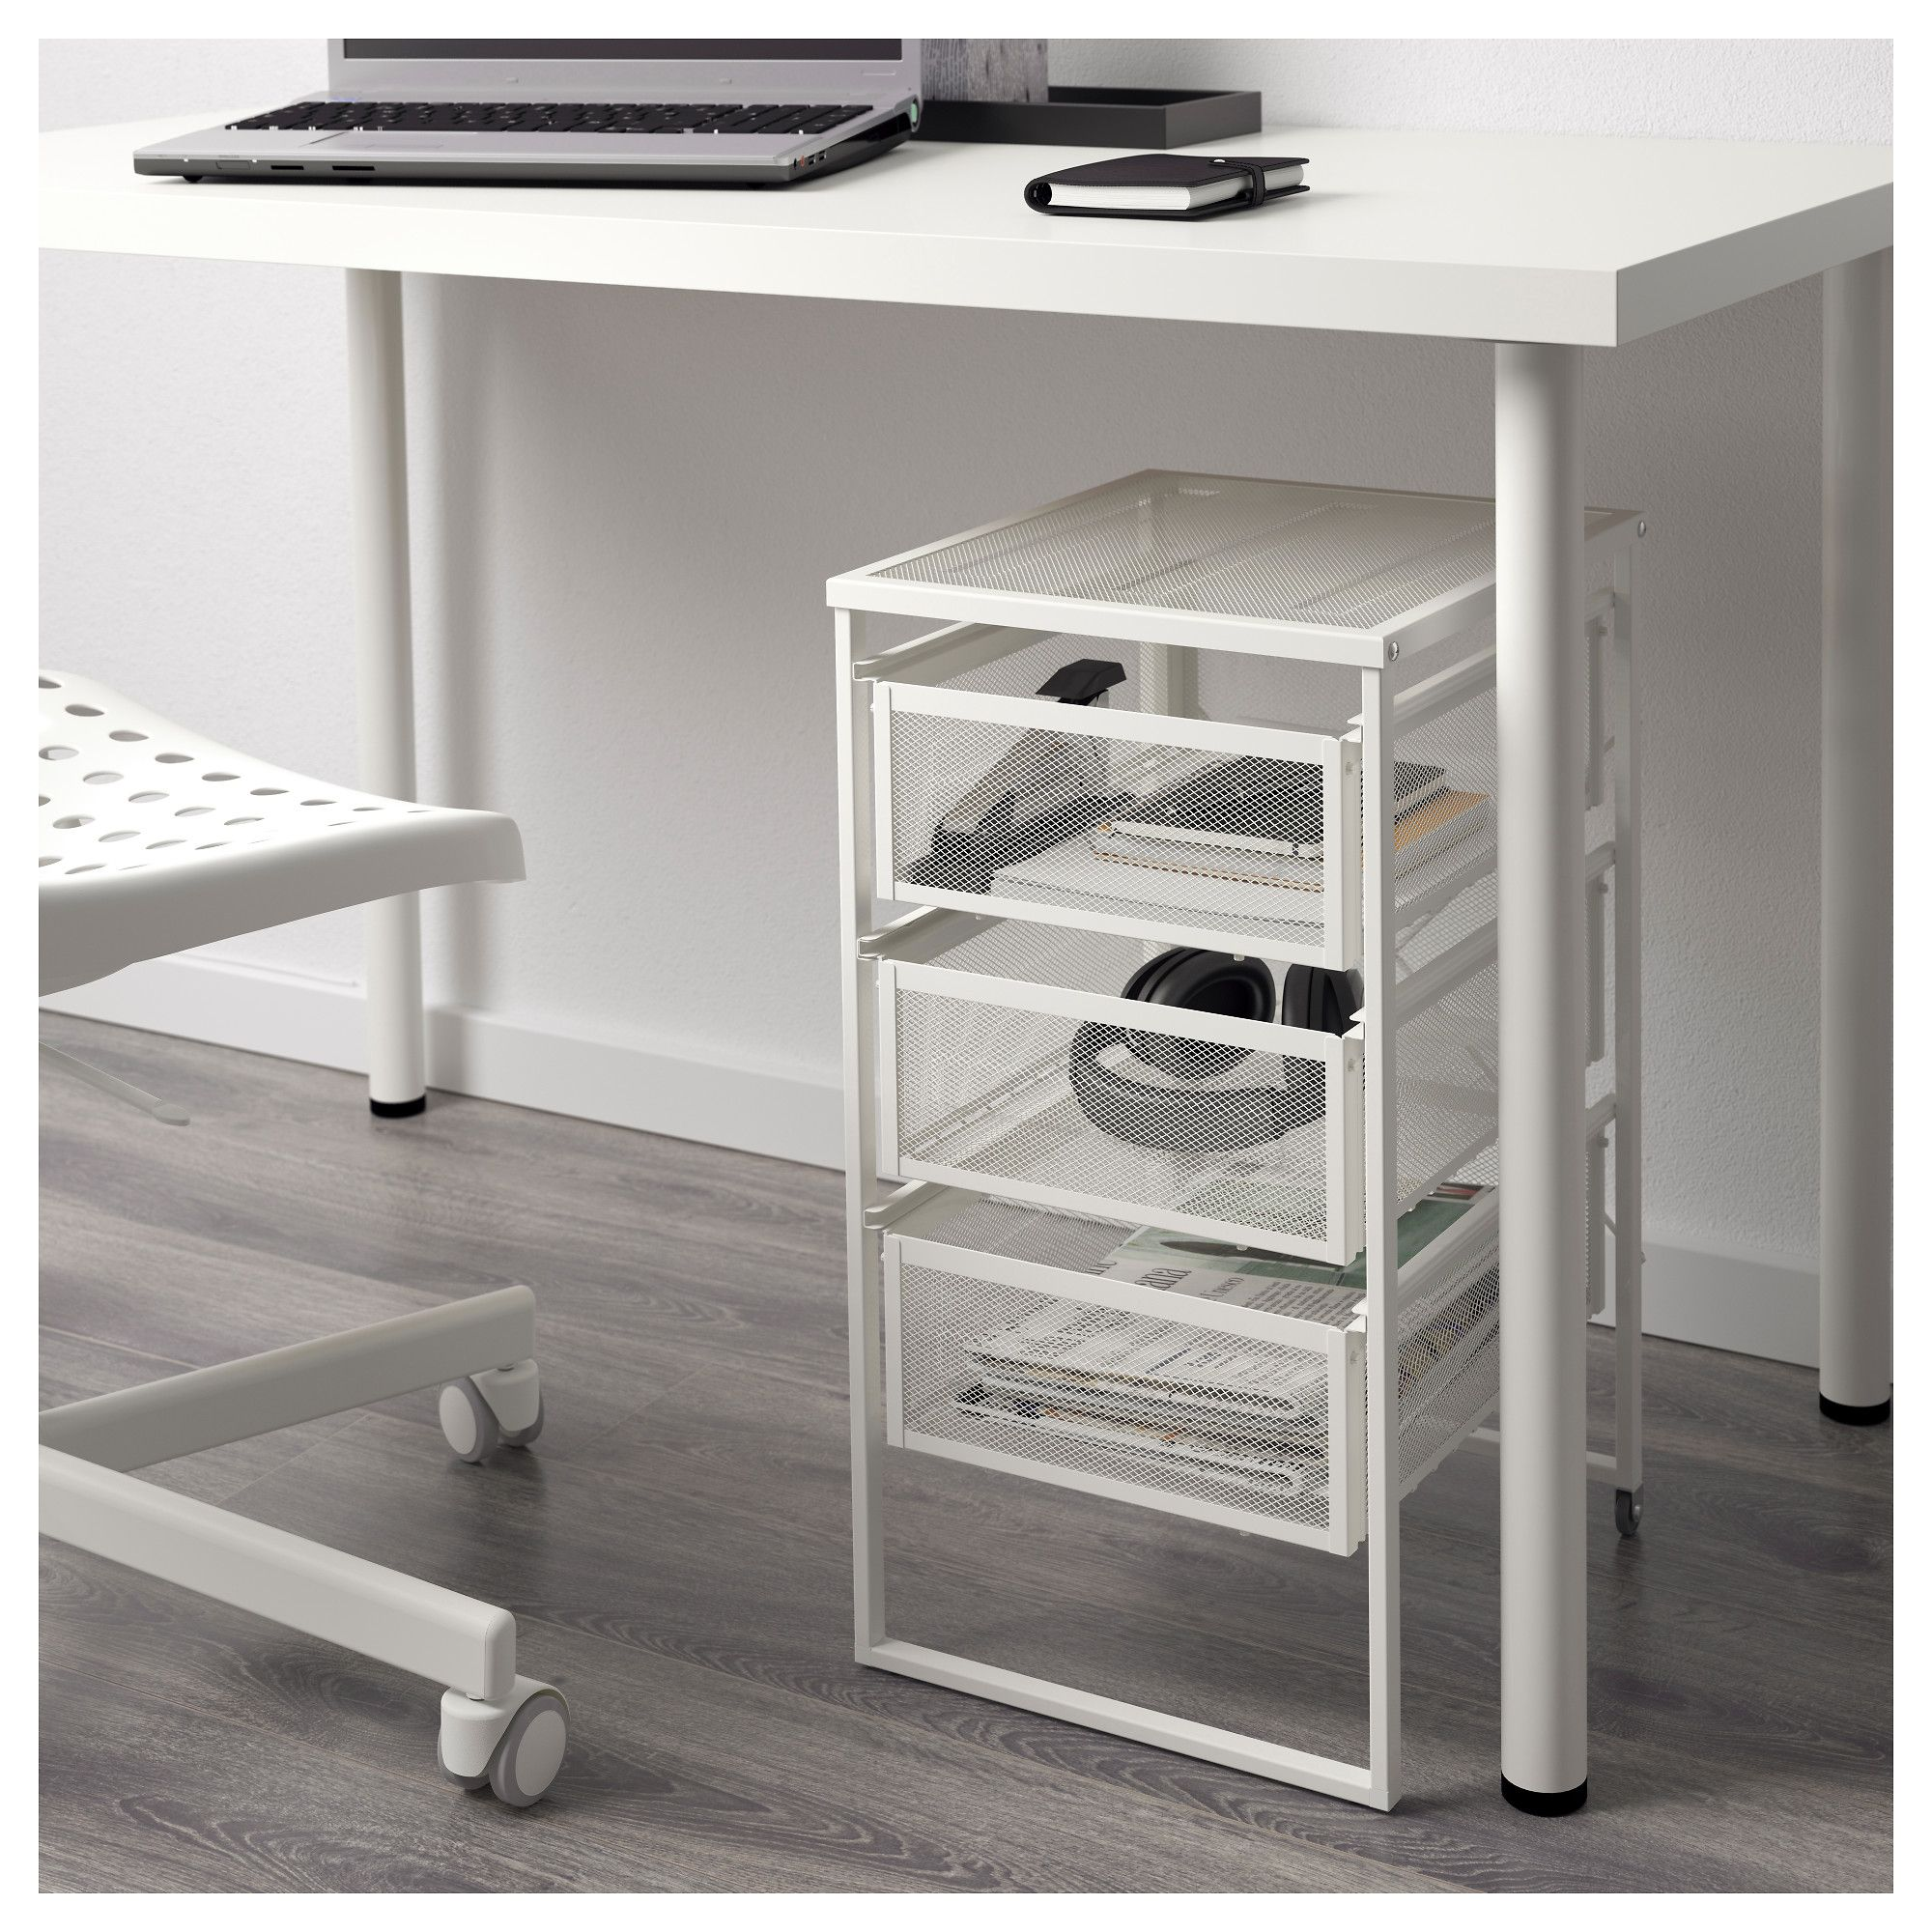 LENNART white, Drawer unit - IKEA  Drawer unit, Under desk